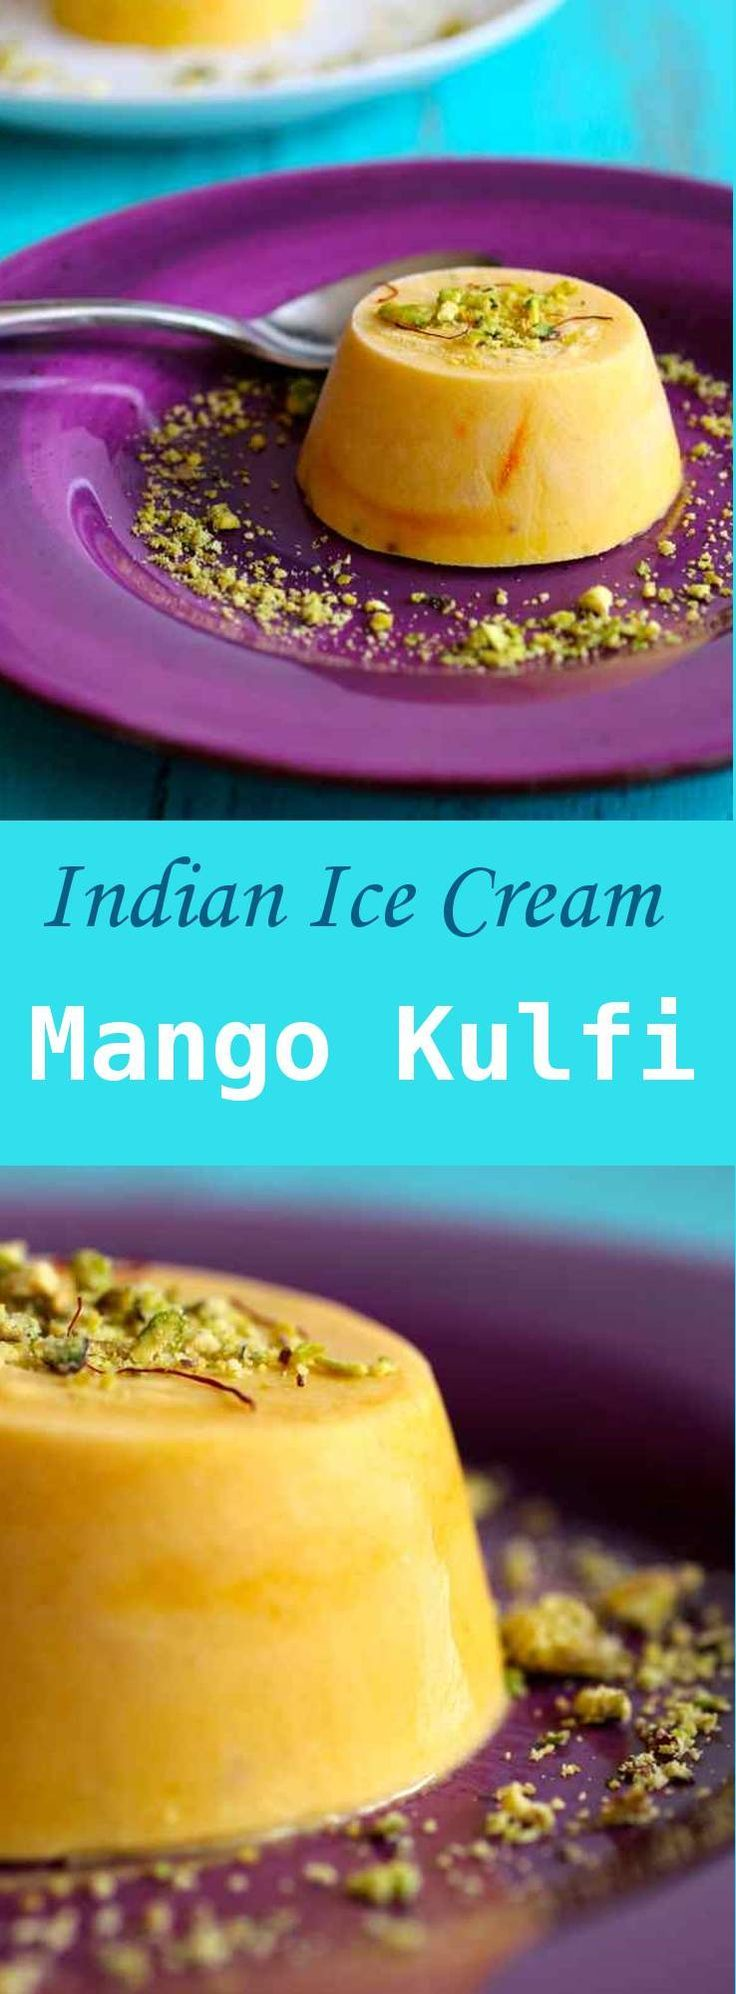 248 best Indian Sweets & Desserts images on Pinterest | Cooking food ...